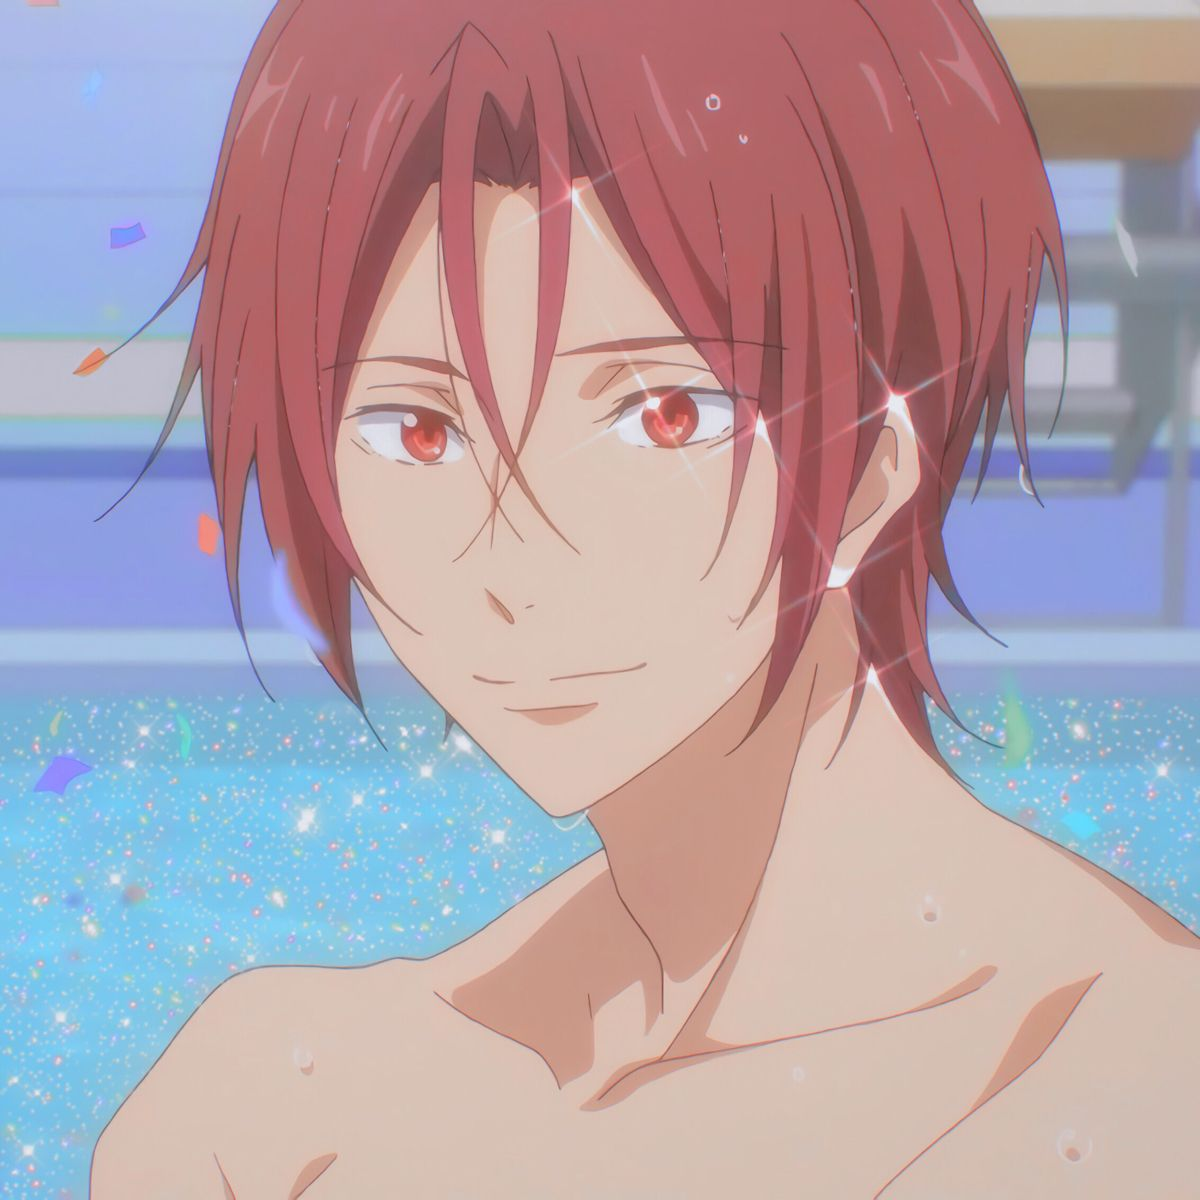 "Н""£ð""¢ð""¦ Aesthetic Anime Anime Anime Icons See more fan art related to #haruka nanase , #free! 𝔣𝔢𝔦 aesthetic anime anime anime icons"